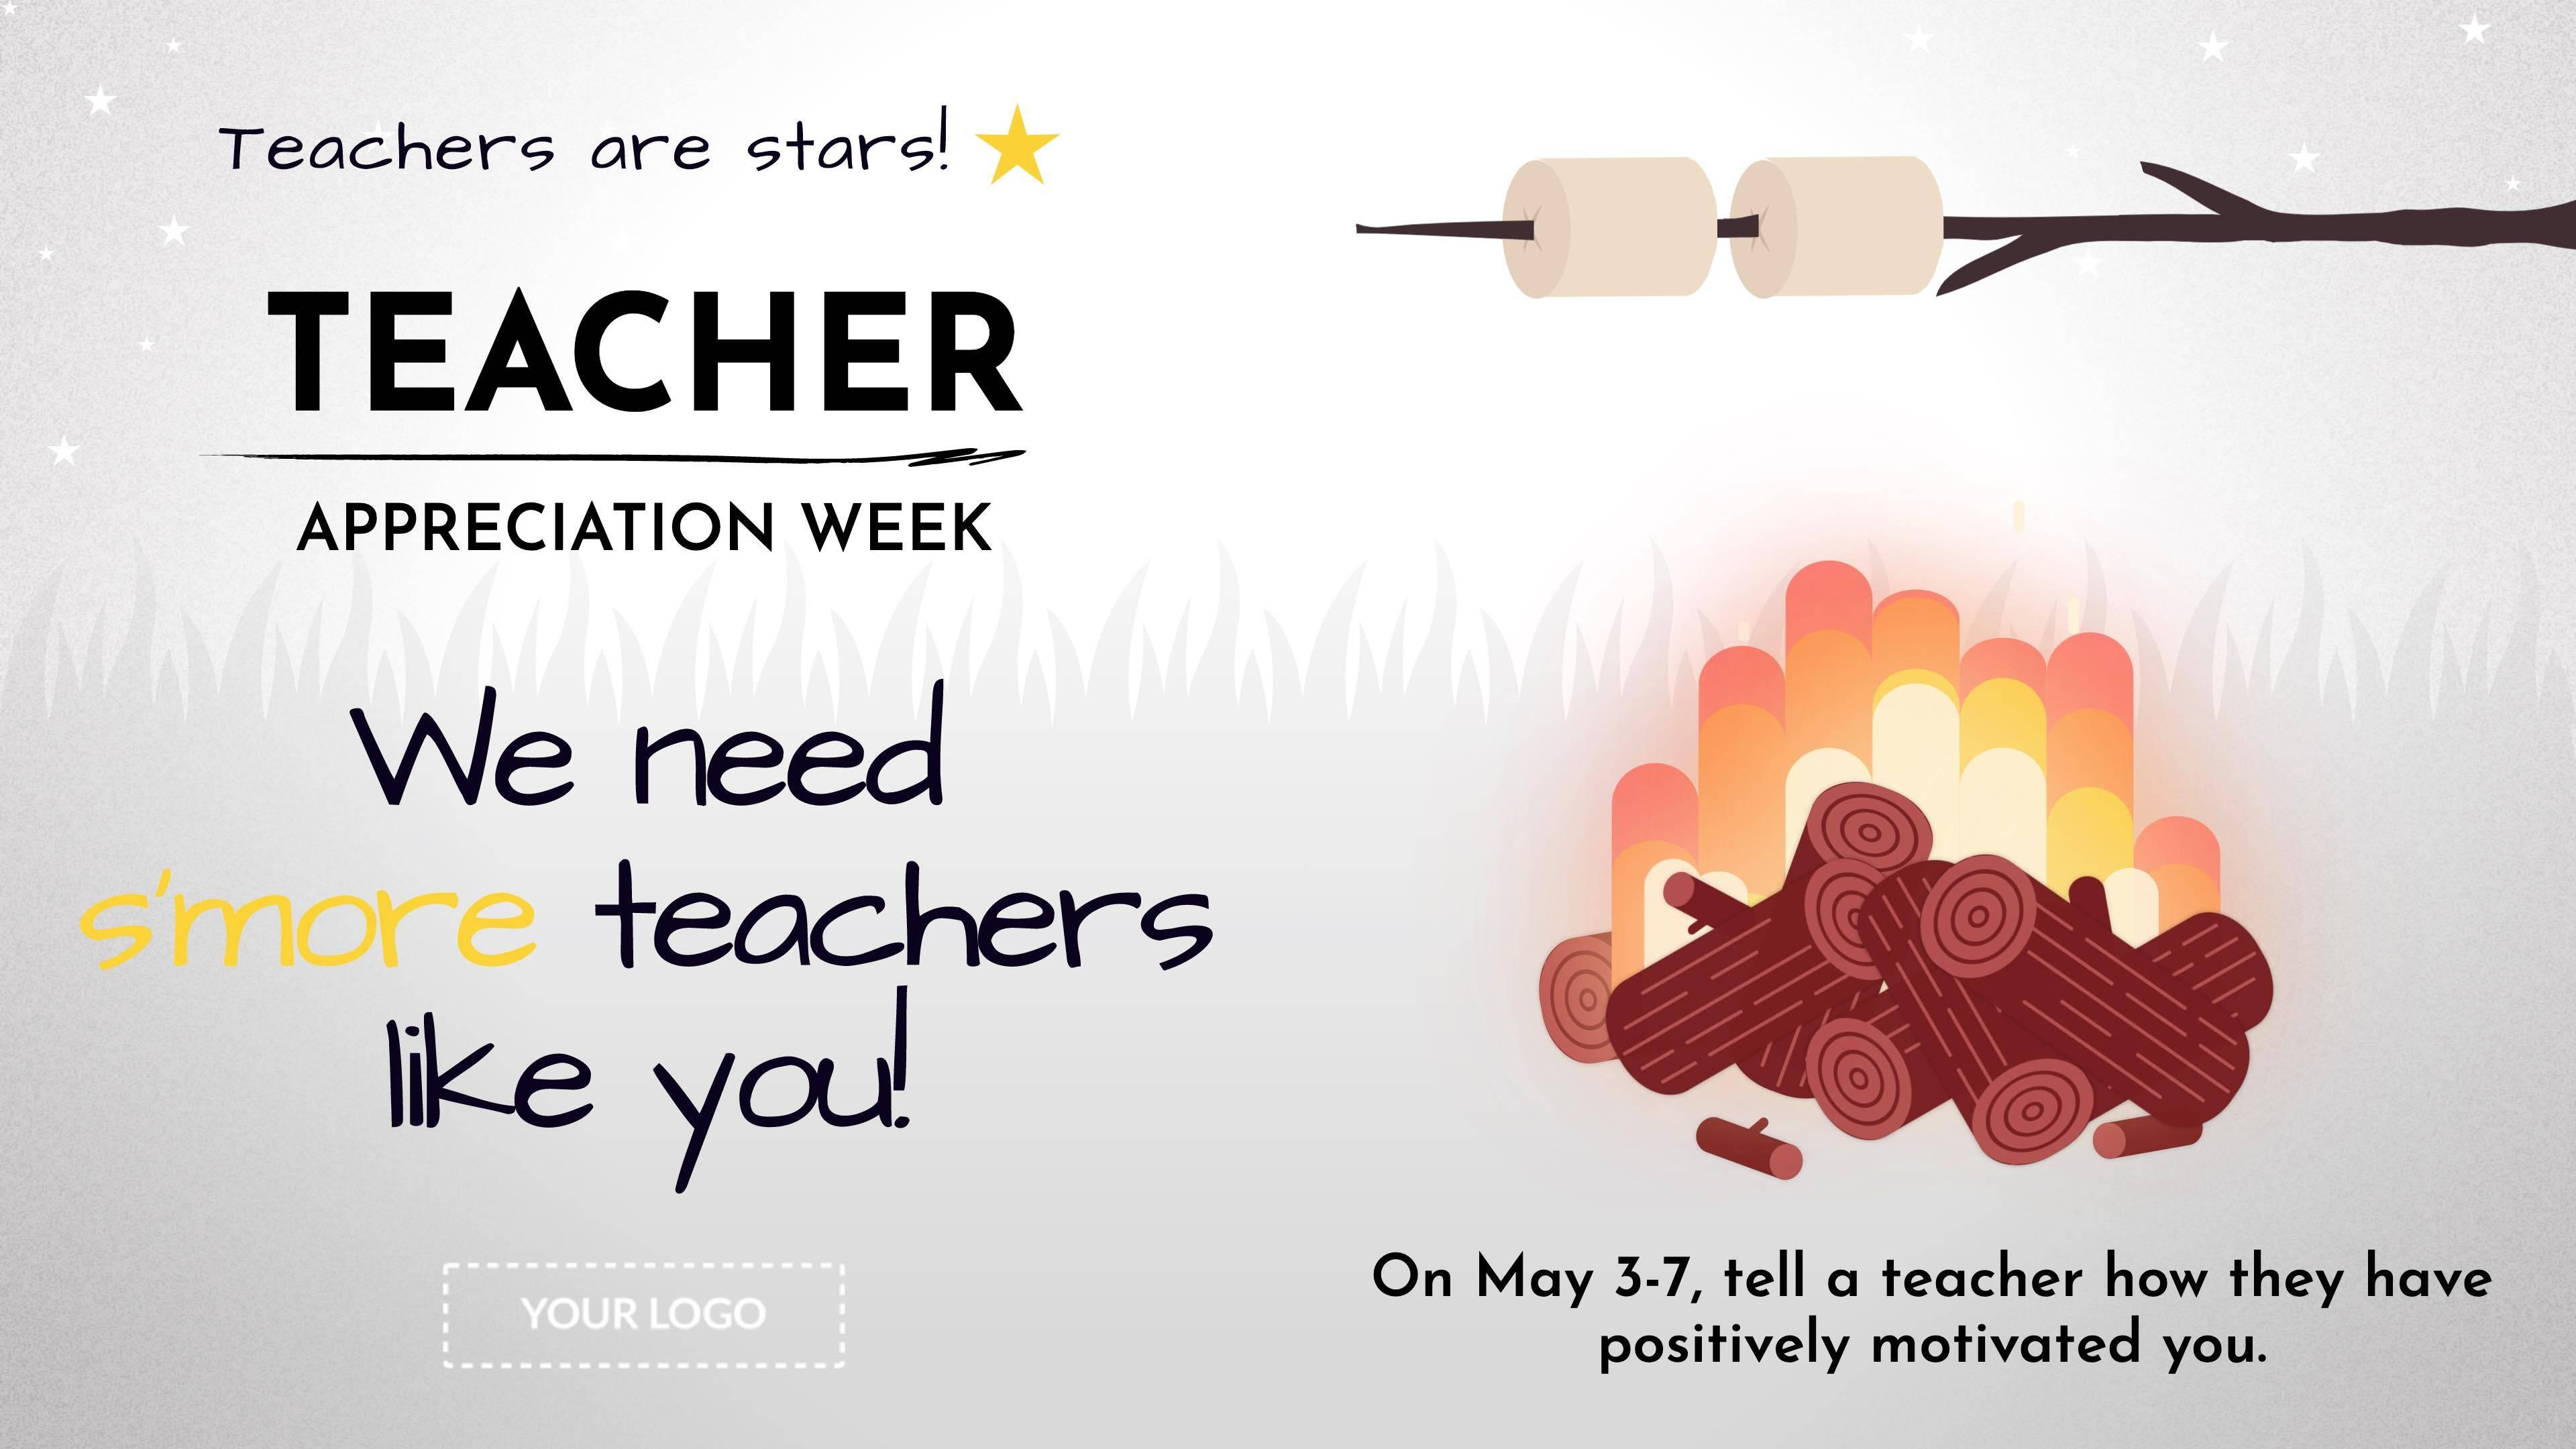 Teacher Appreciation Week S'more Teachers Digital Signage Template